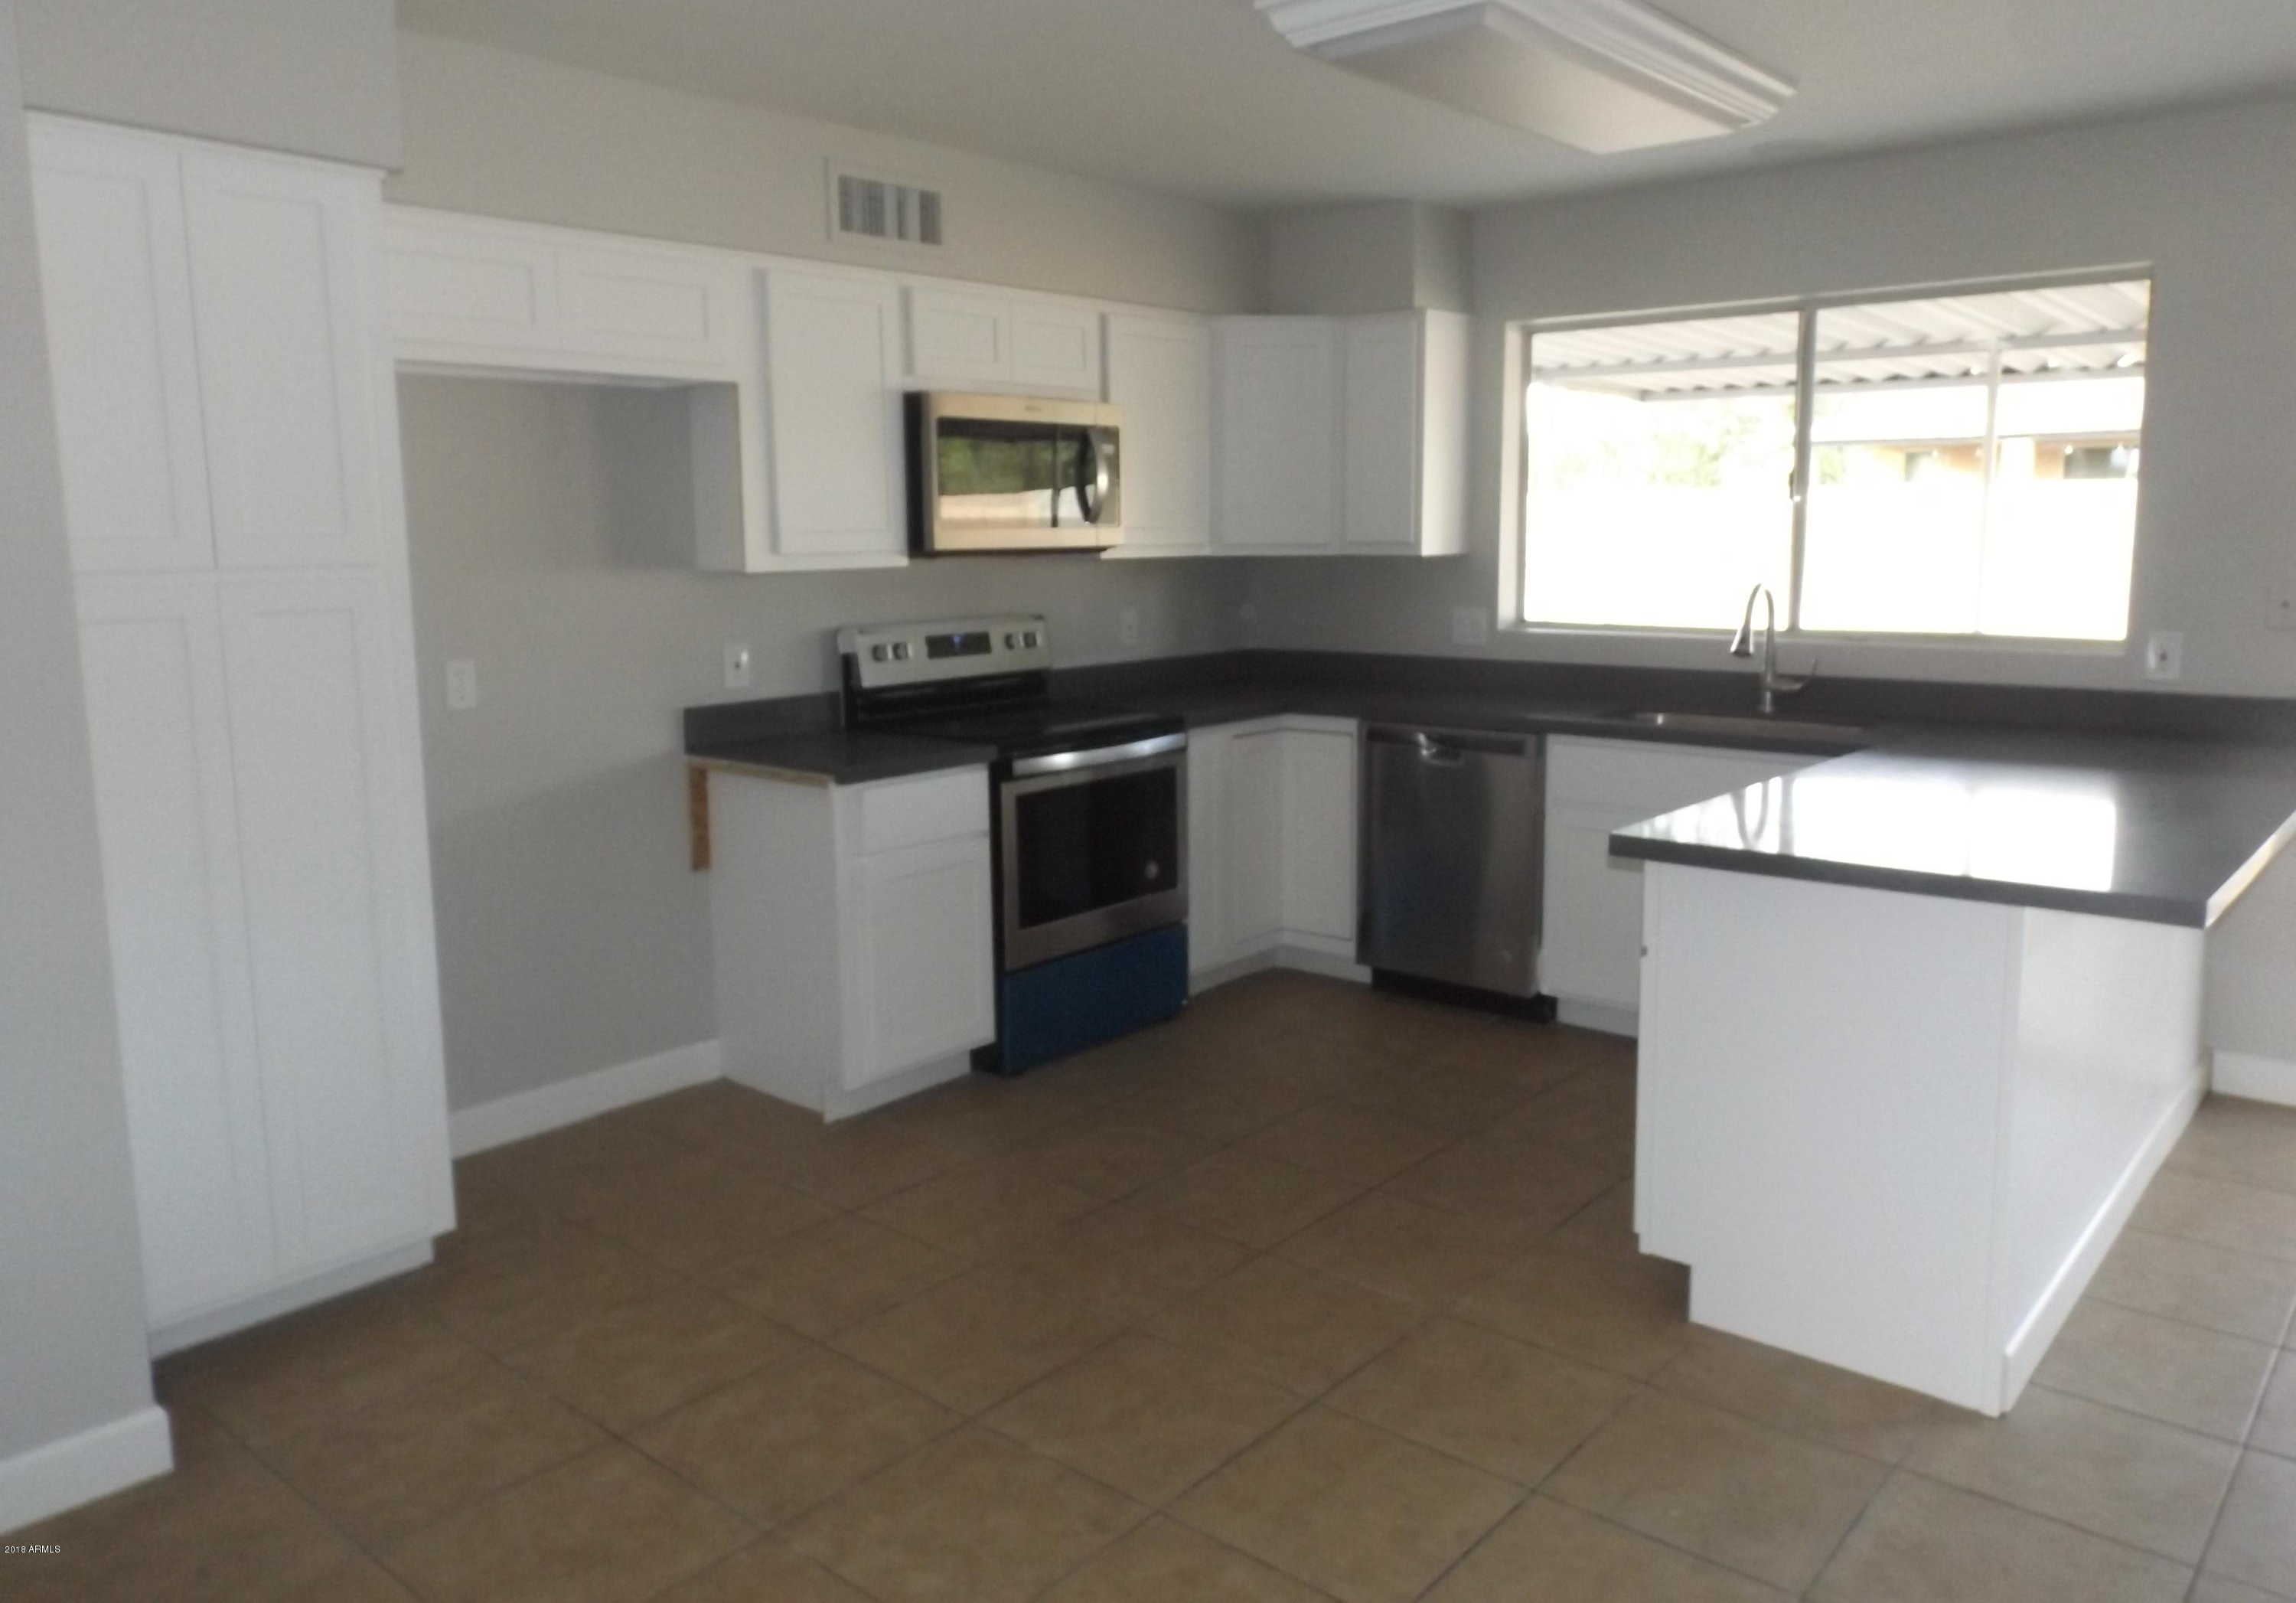 $210,000 - 3Br/2Ba - Home for Sale in Knoell North 10, Glendale